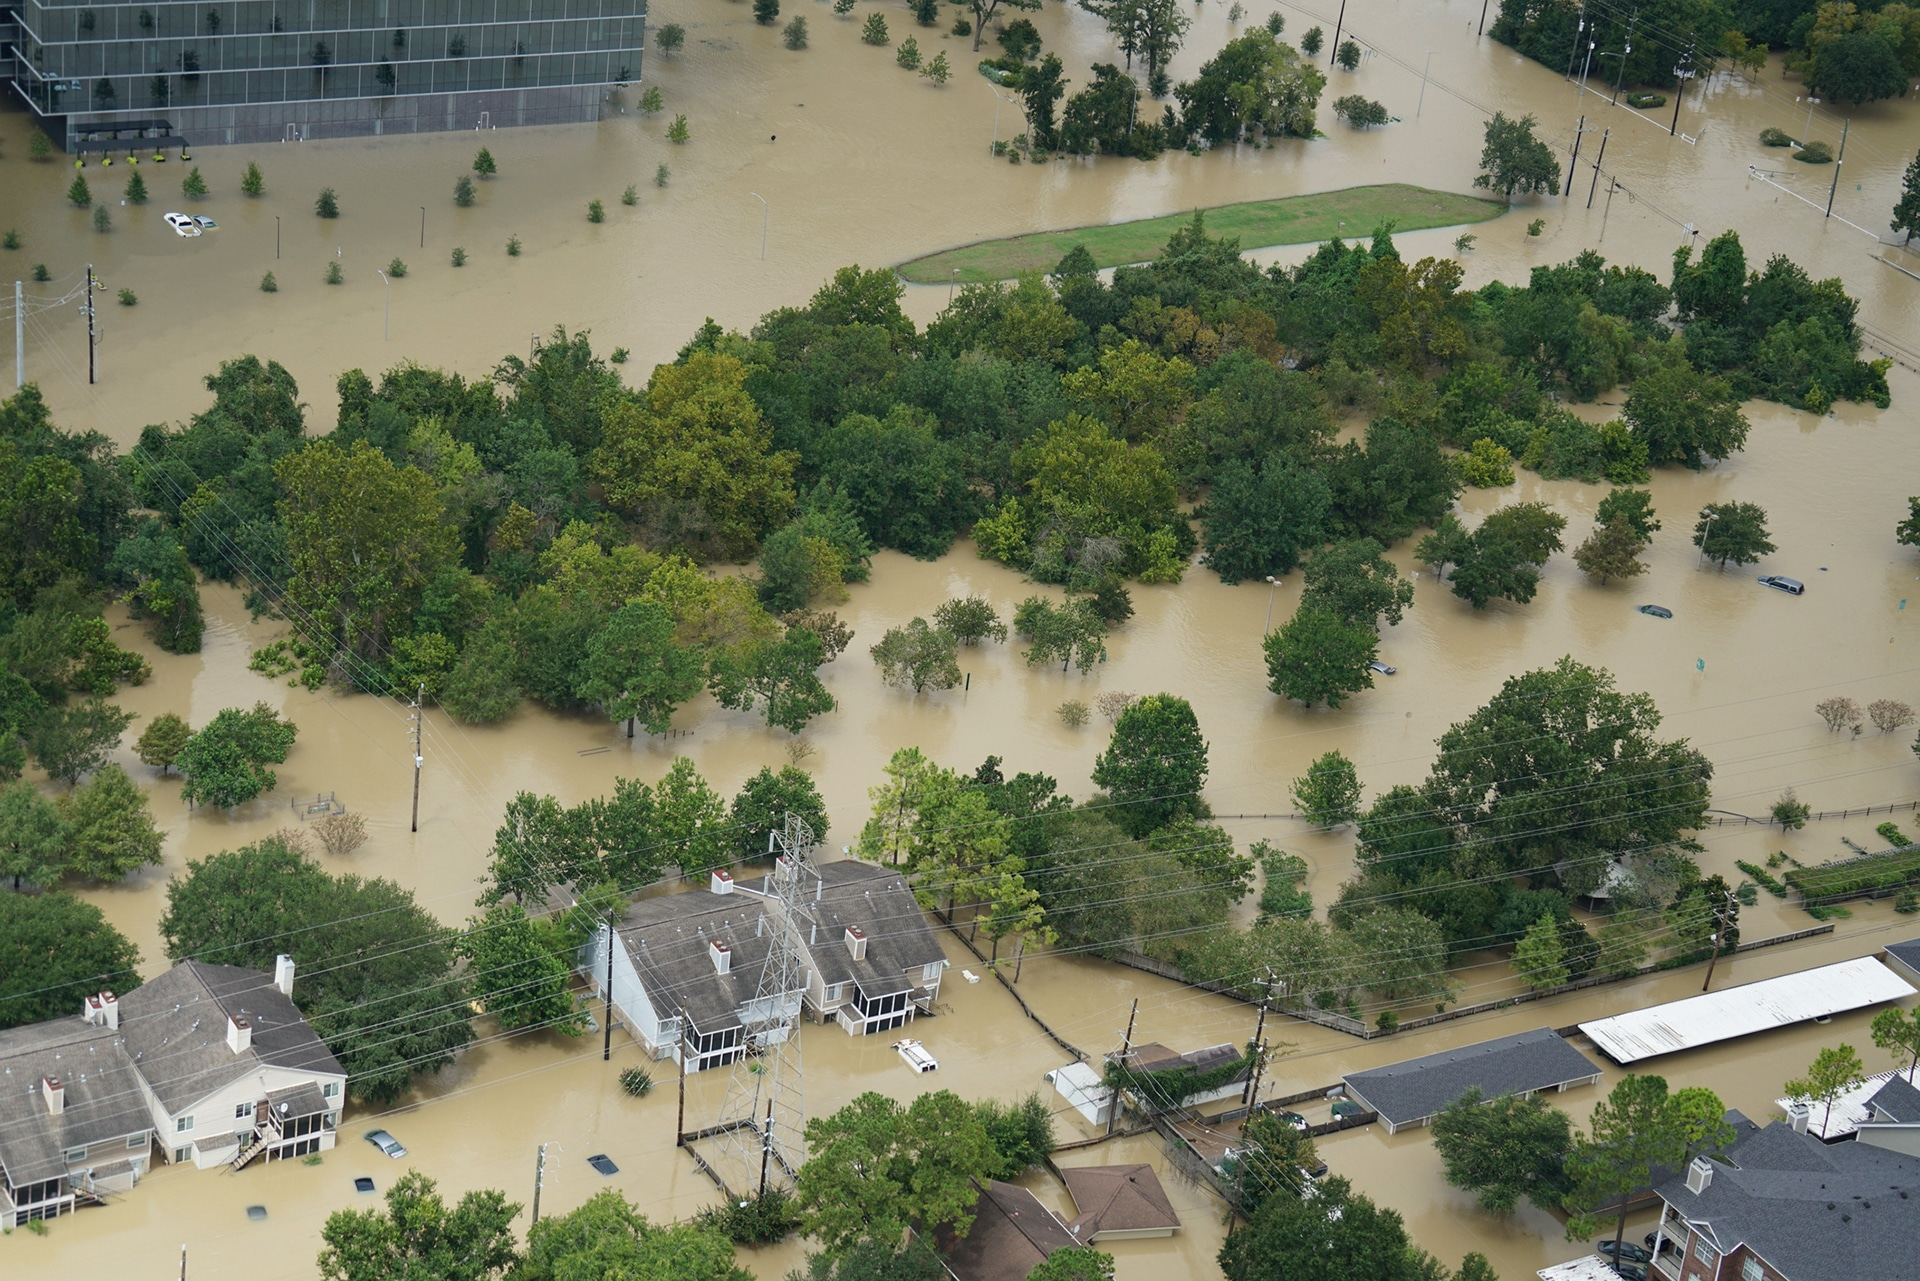 Flooding by Hurricane Harvey, United States - Veganism & the Environment Guide - Your Daily Vegan